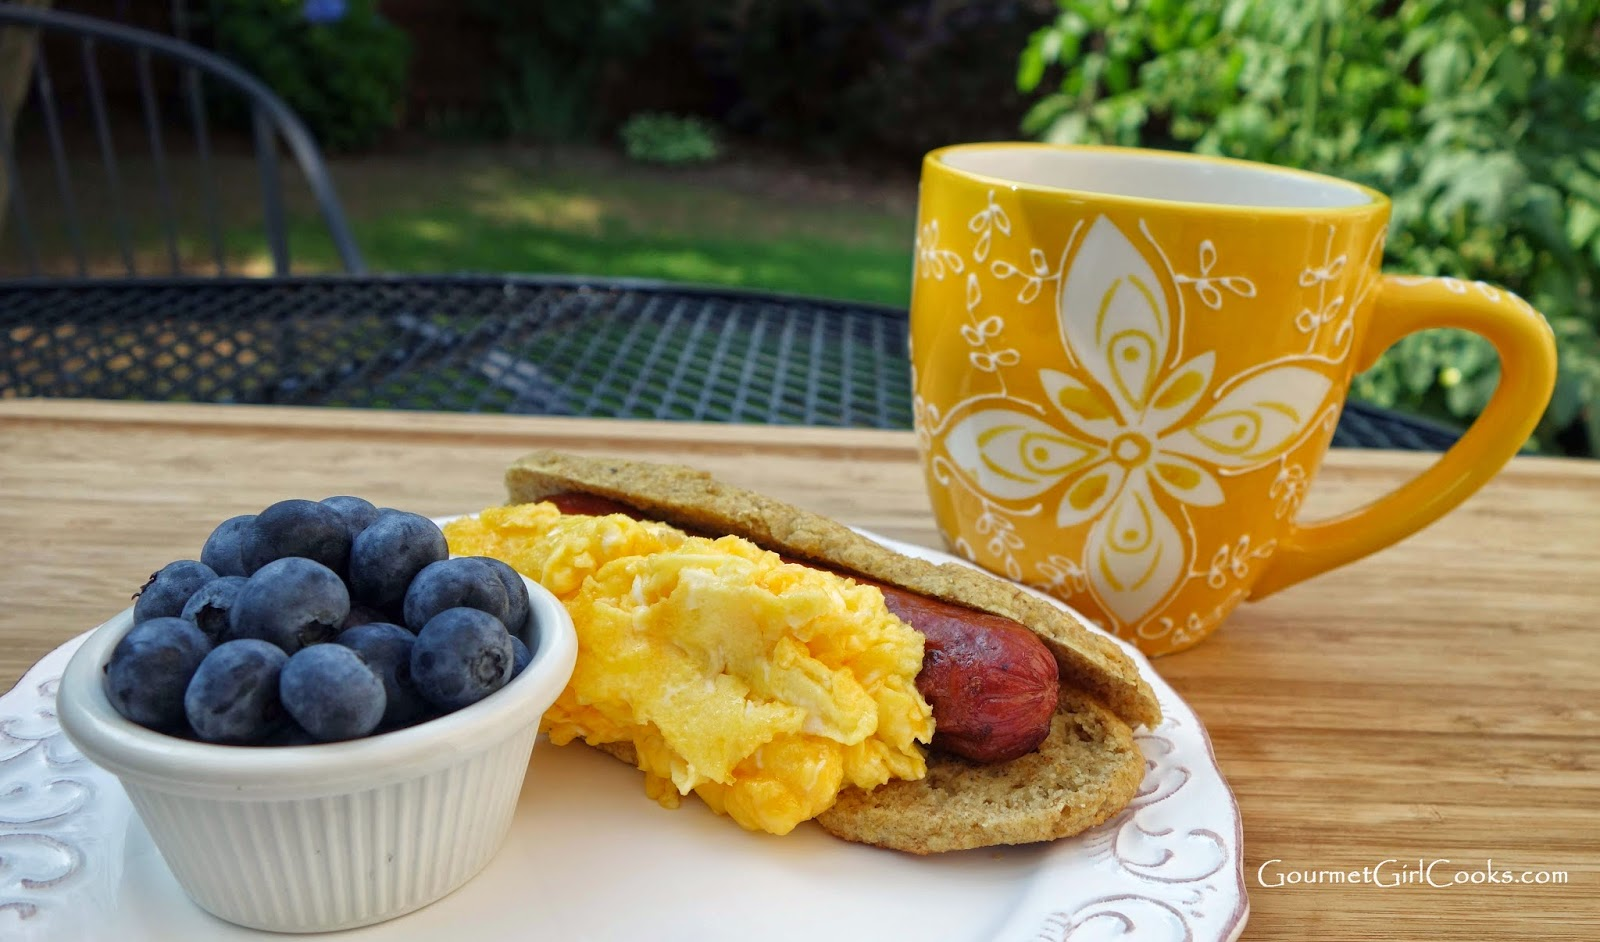 Gourmet Girl Cooks: Eggy Cheese Dogs -- Sunday's Wacky Breakfast